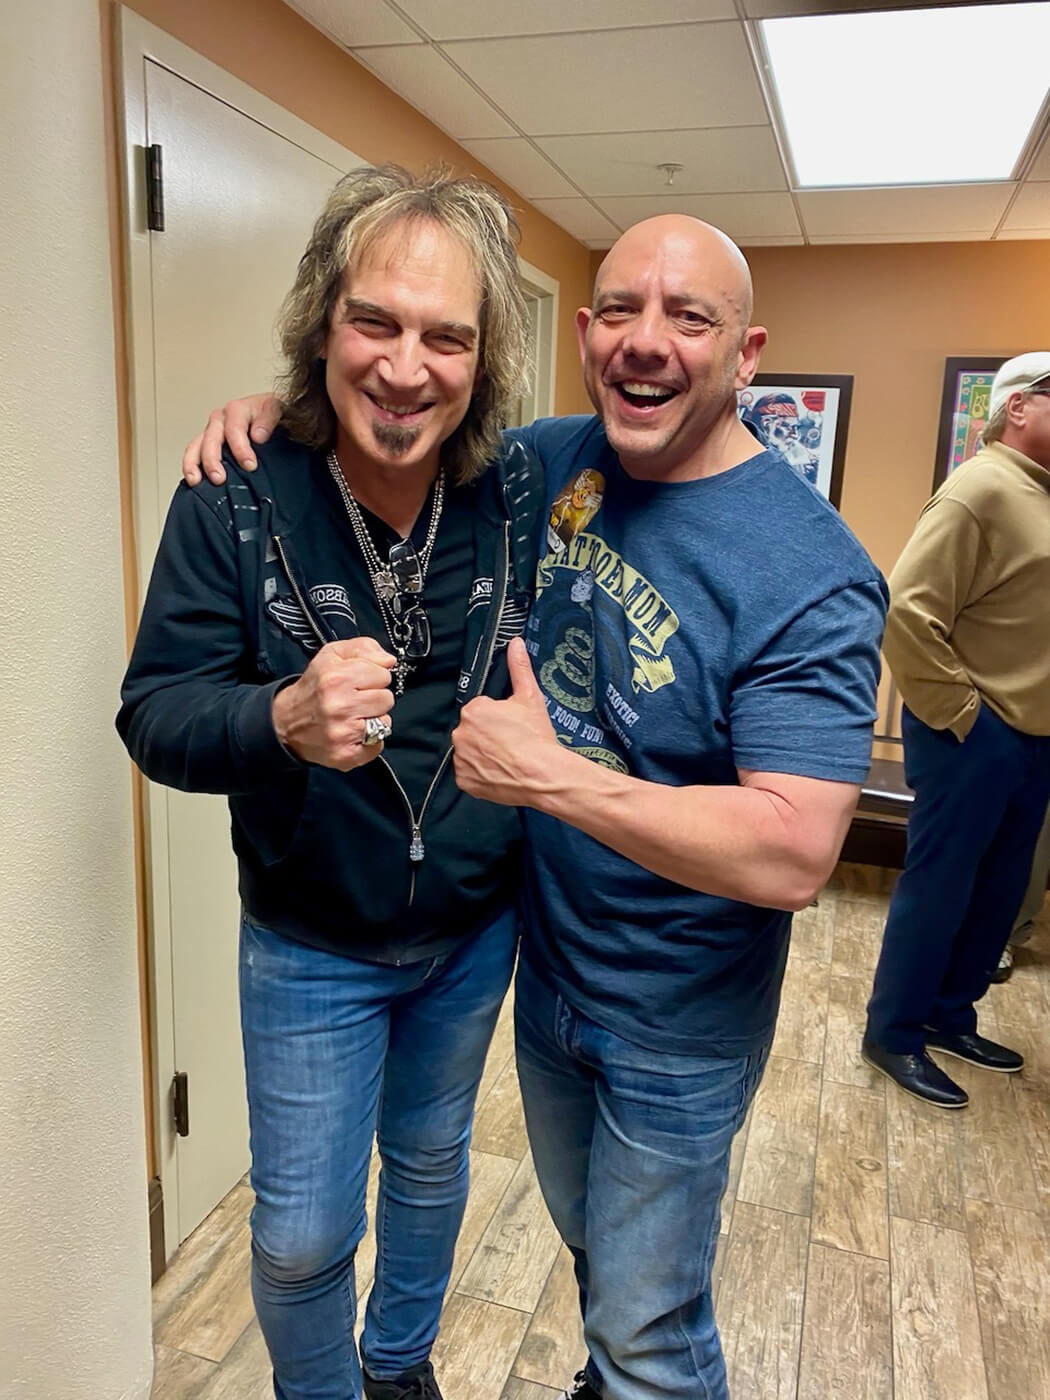 Craig Garber with Dave Amato of REO Speedwagon